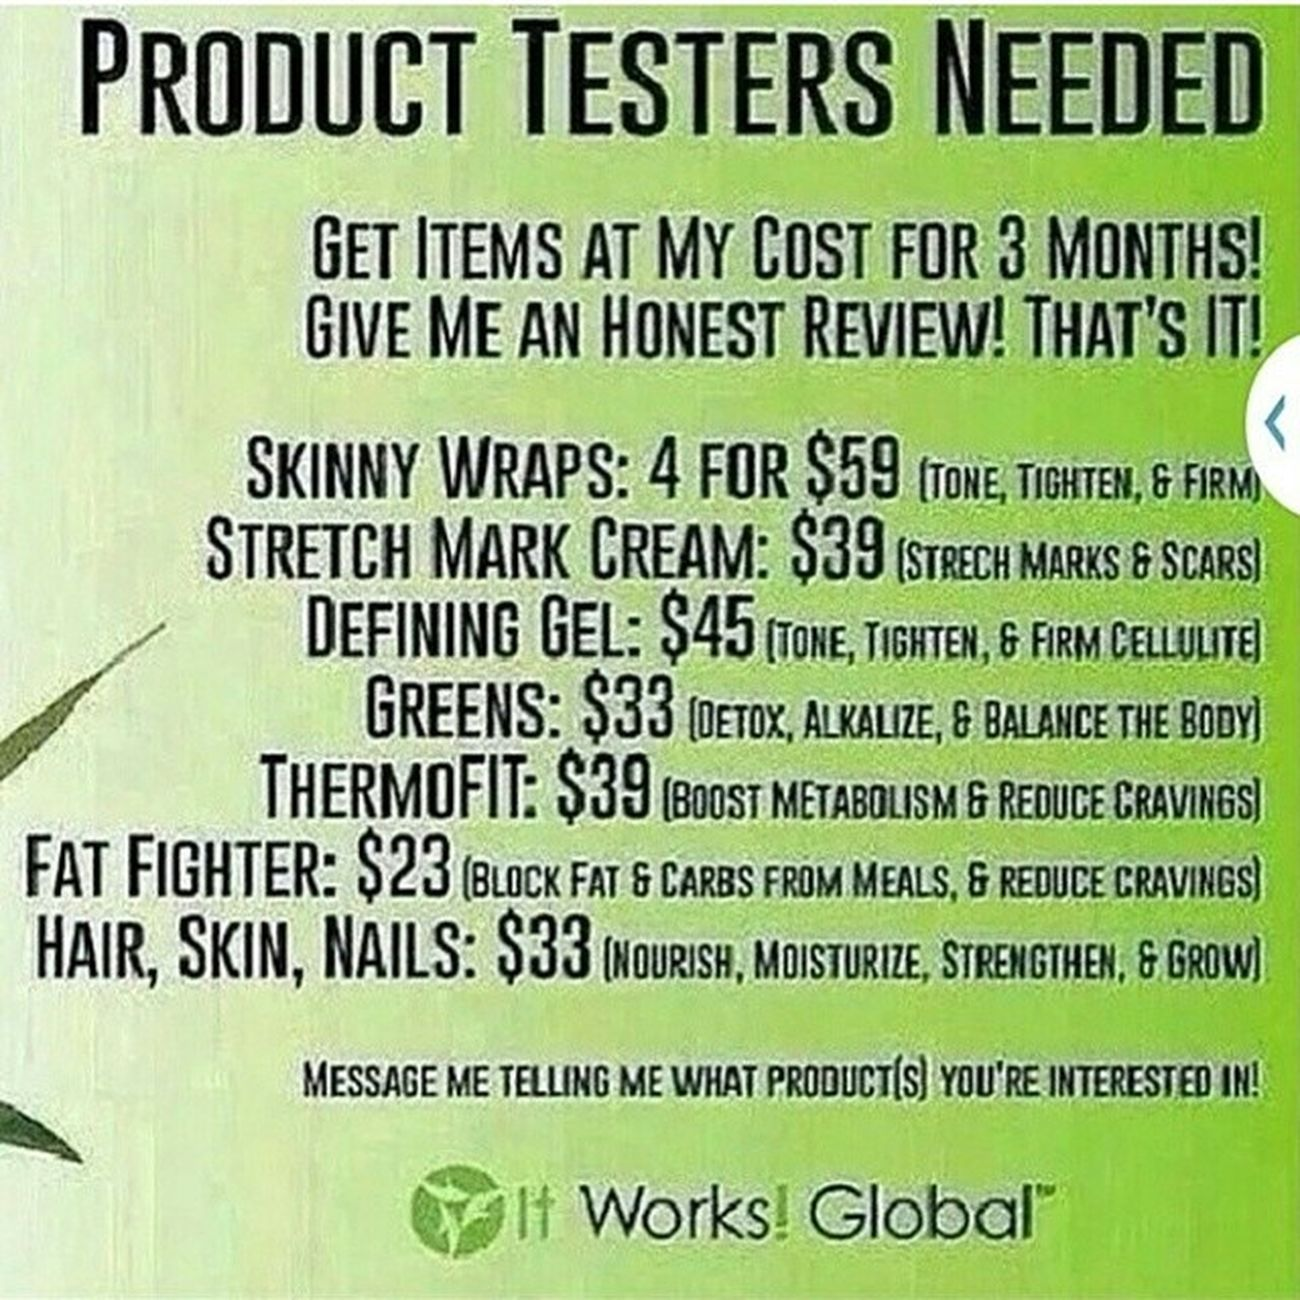 Contact me on getting the details on getting these products at my prices. Compared to normal rerail value. You won't regret the results. ItWorks! Itworks Crazywrapthing Crazywrap Didntexpectresults cellulite bigtummy notsurewhattoexpect resultsin45 healthyin45 fabwrapsallaround itworksglobal realmenwrap hsn hairskinnails wraps greens detoxify tighten tone firm